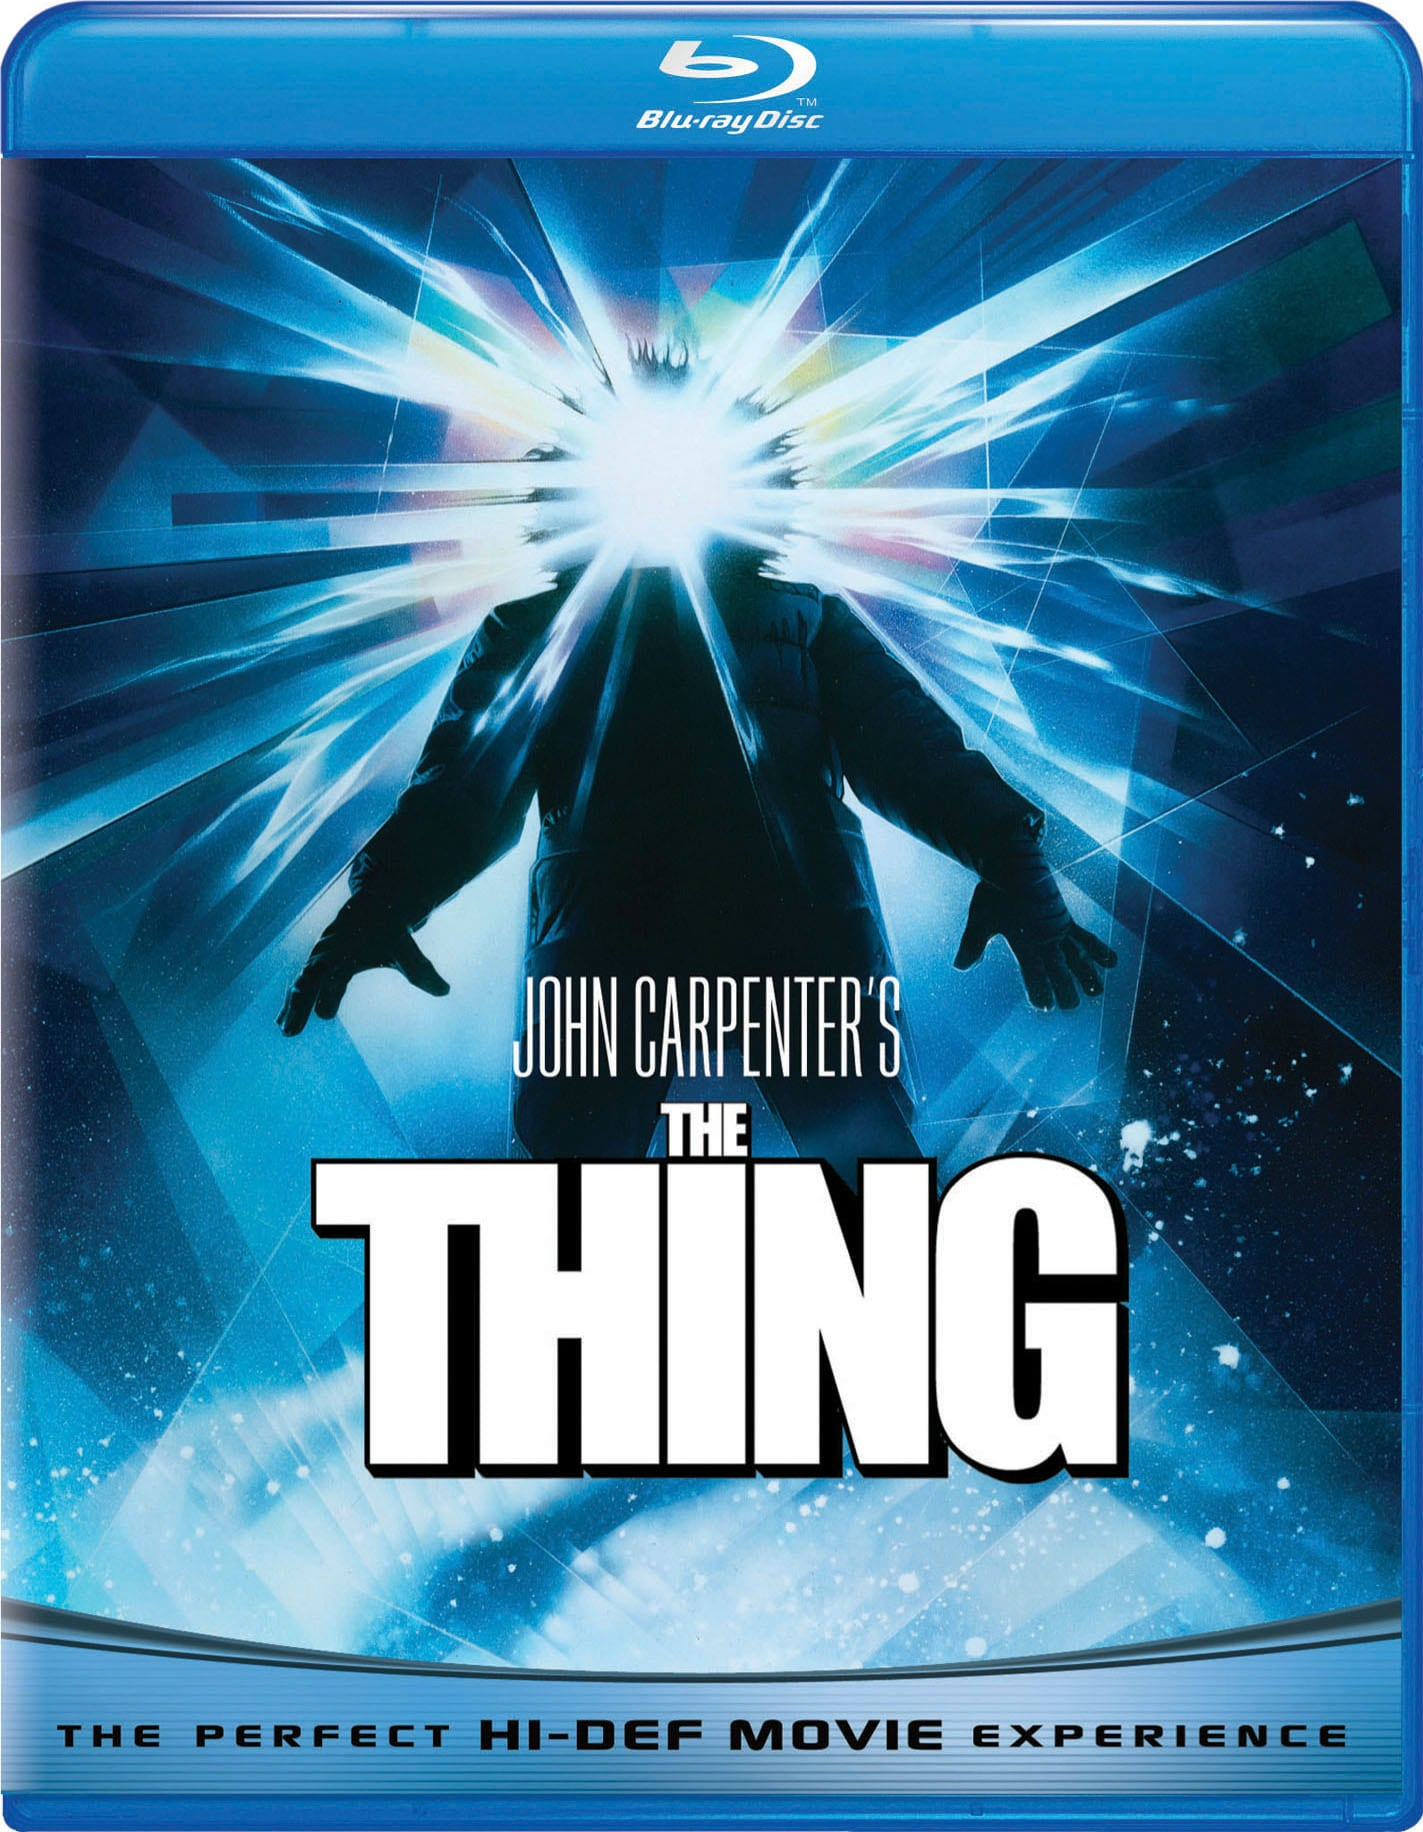 The Thing (2008) [Blu-ray]